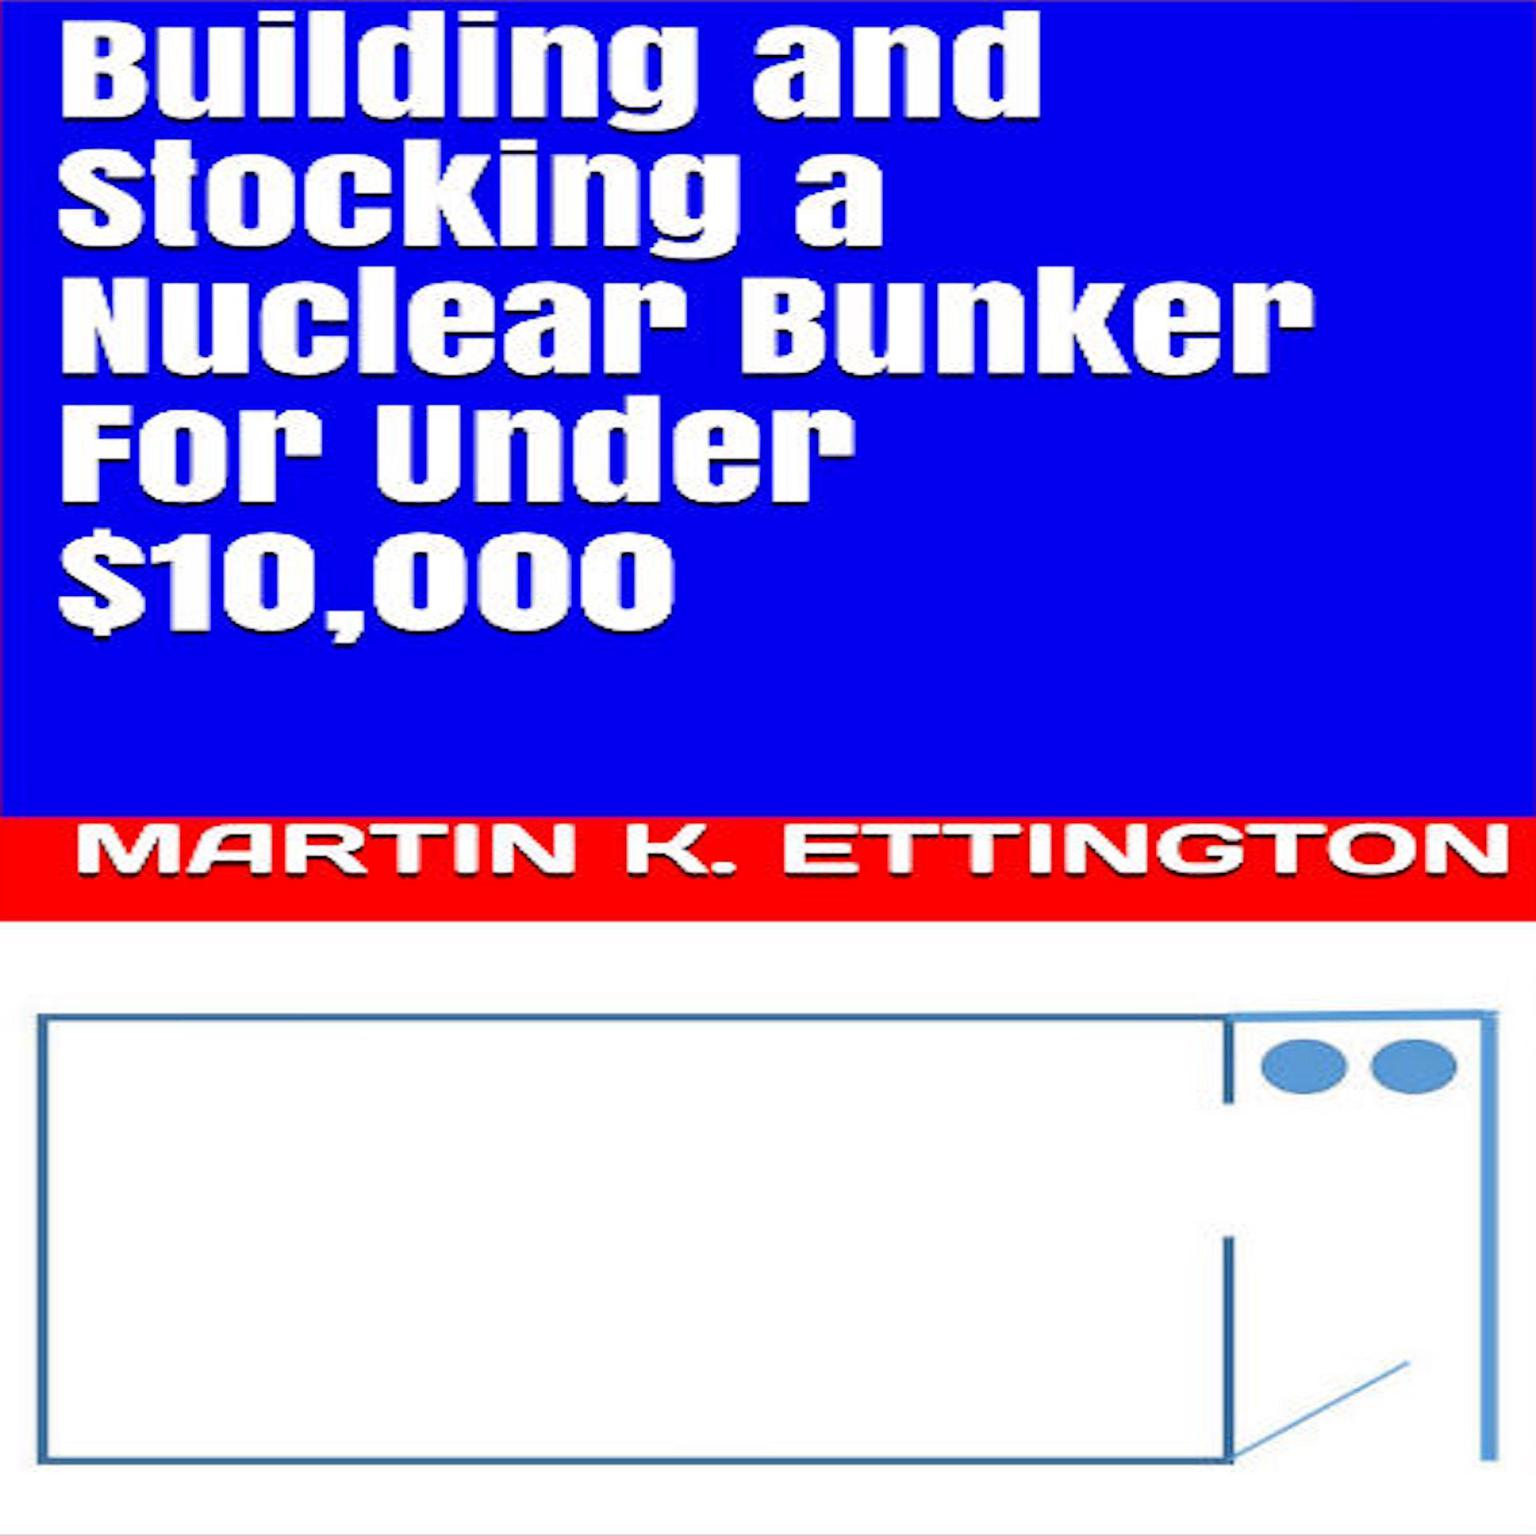 Building and Stocking a Nuclear Bunker For Under $10,000 Audiobook, by Martin K. Ettington